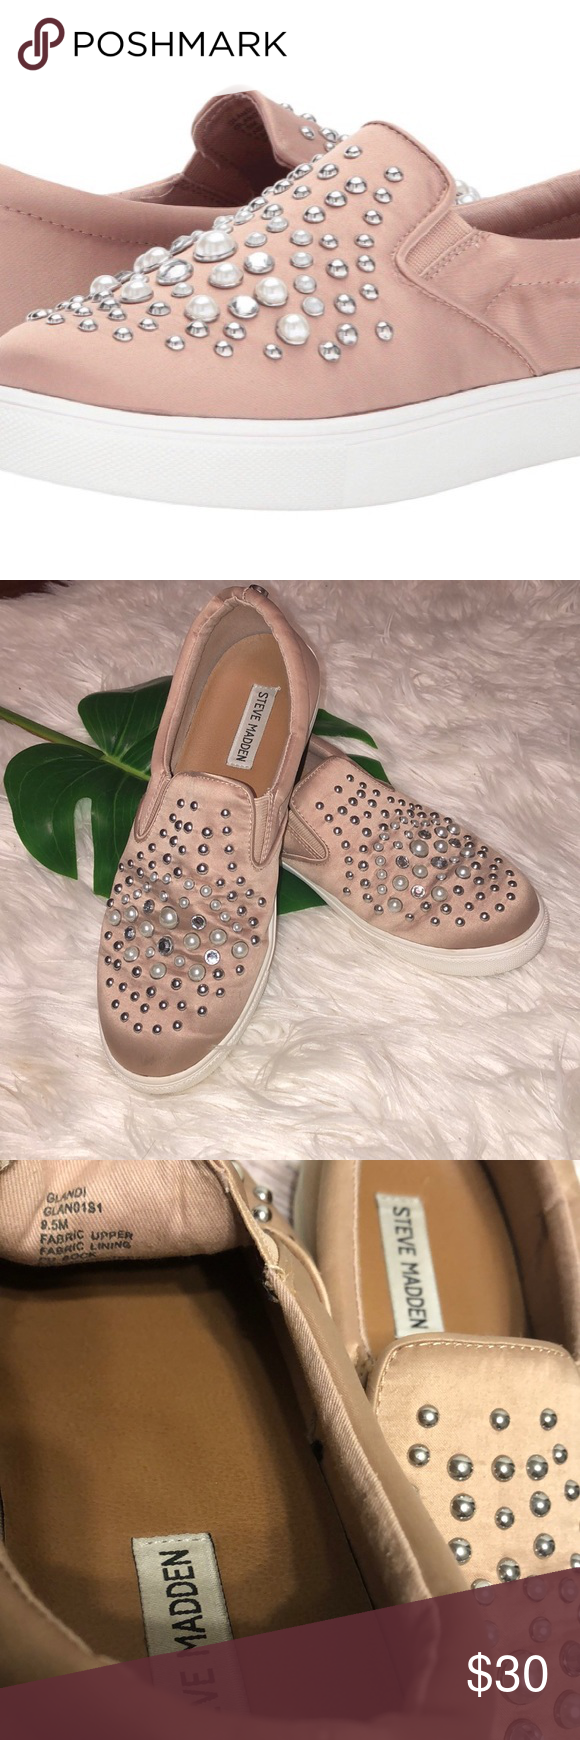 extremidades Posdata Pies suaves  Steve Madden Glandi Gently used rose gold pink no missing studs small spot  on back Steve Madden Shoes   Steve madden shoes, Wedding sneaker, Steve  madden